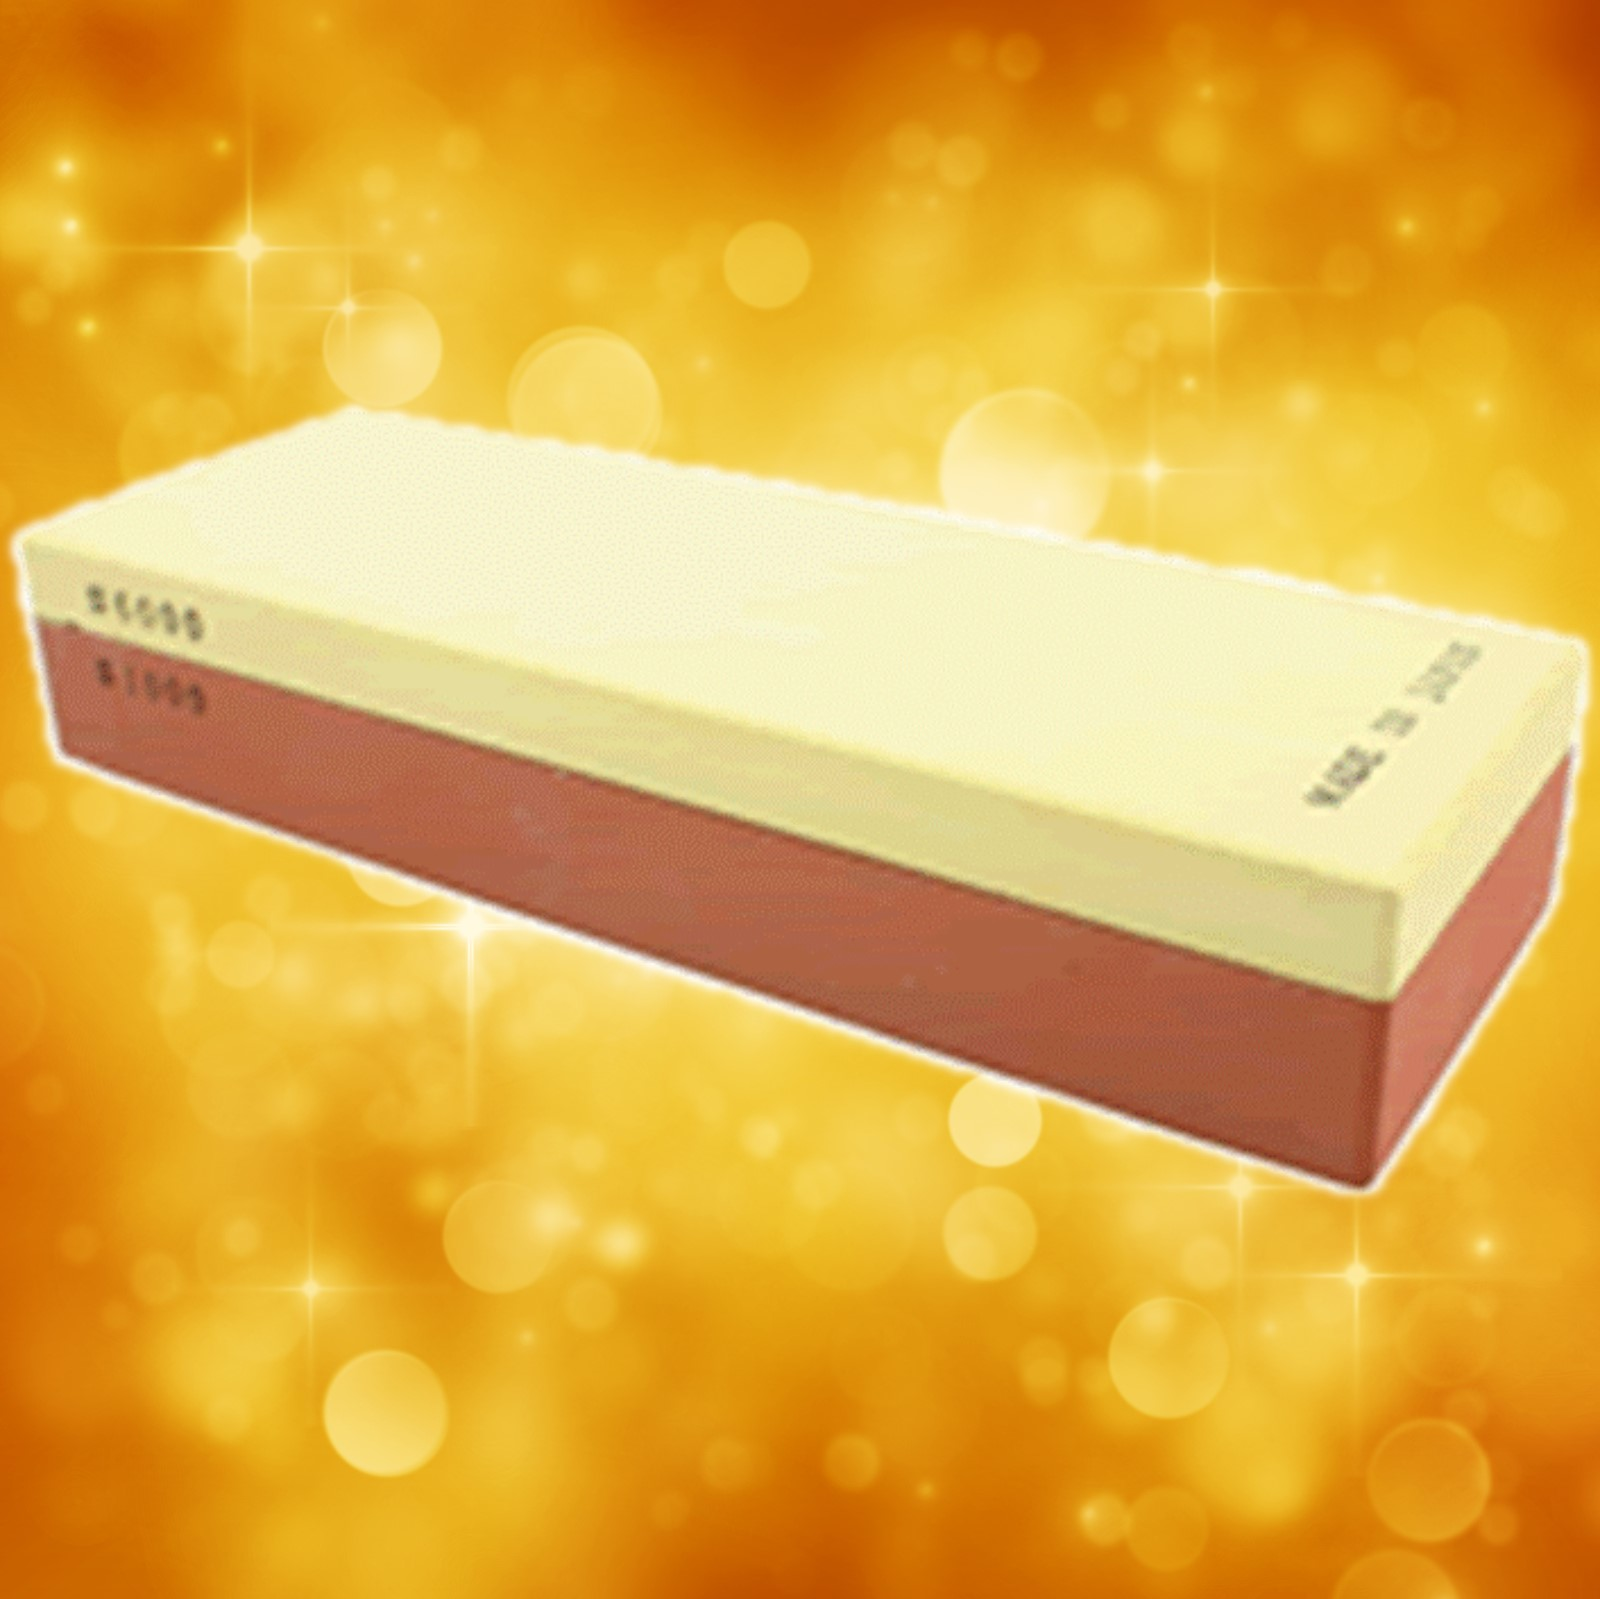 "Suehiro Japanese Wet Stone 1000/6000 Grit Double Sided Size: 8-1/4"" x 2-3/4"" x 1-3/8"" 705-2000"